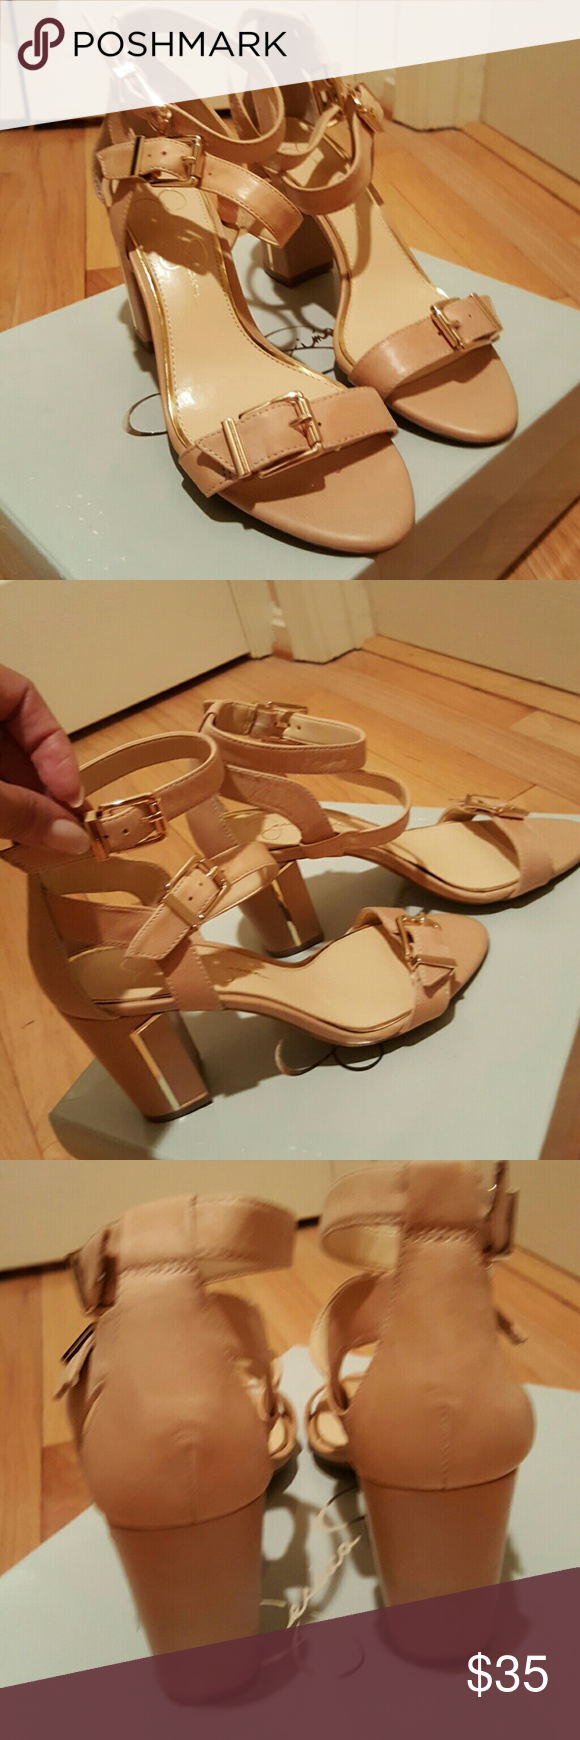 "High-heeled sandals 3-1/2"" light tan leather sandals, worn once!  Ladies my storage clean out is your gain! ???? Jessica Simpson Shoes Sandals"